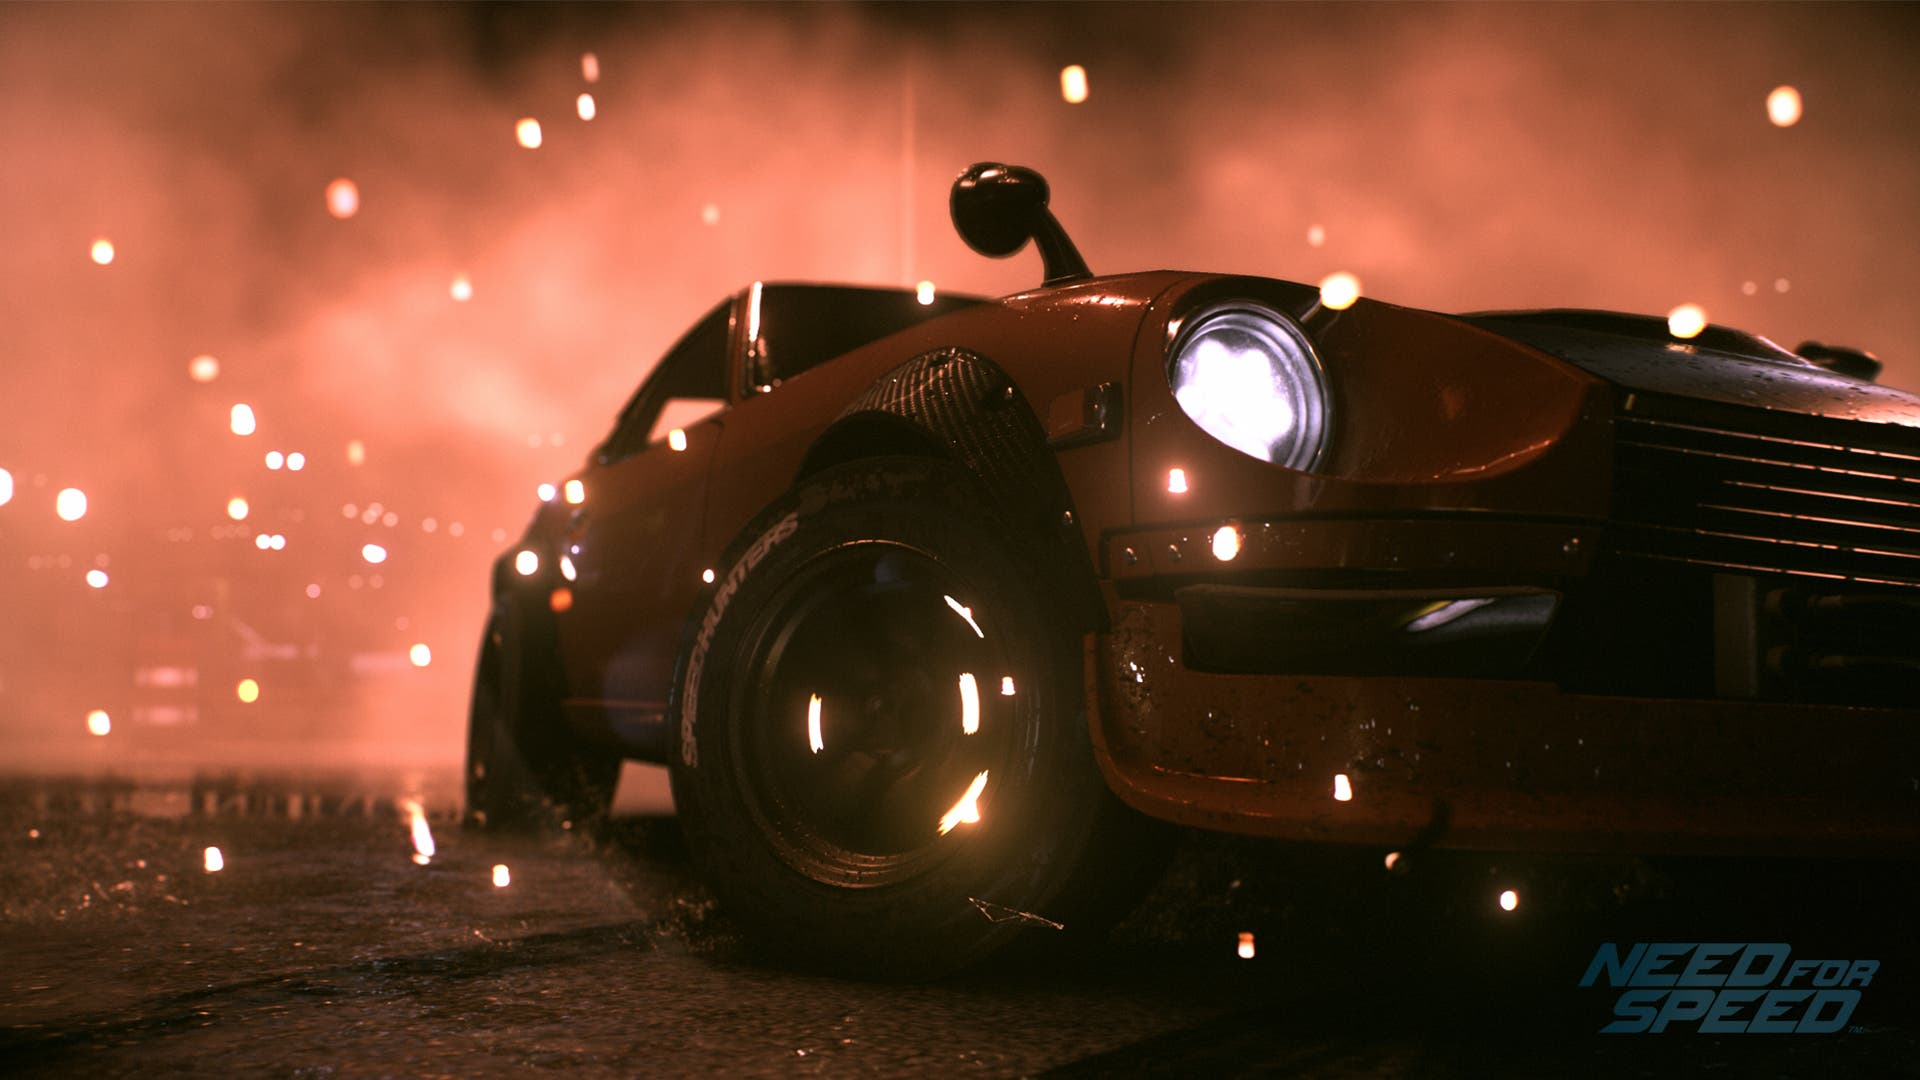 NeedForSpeed-review(3)